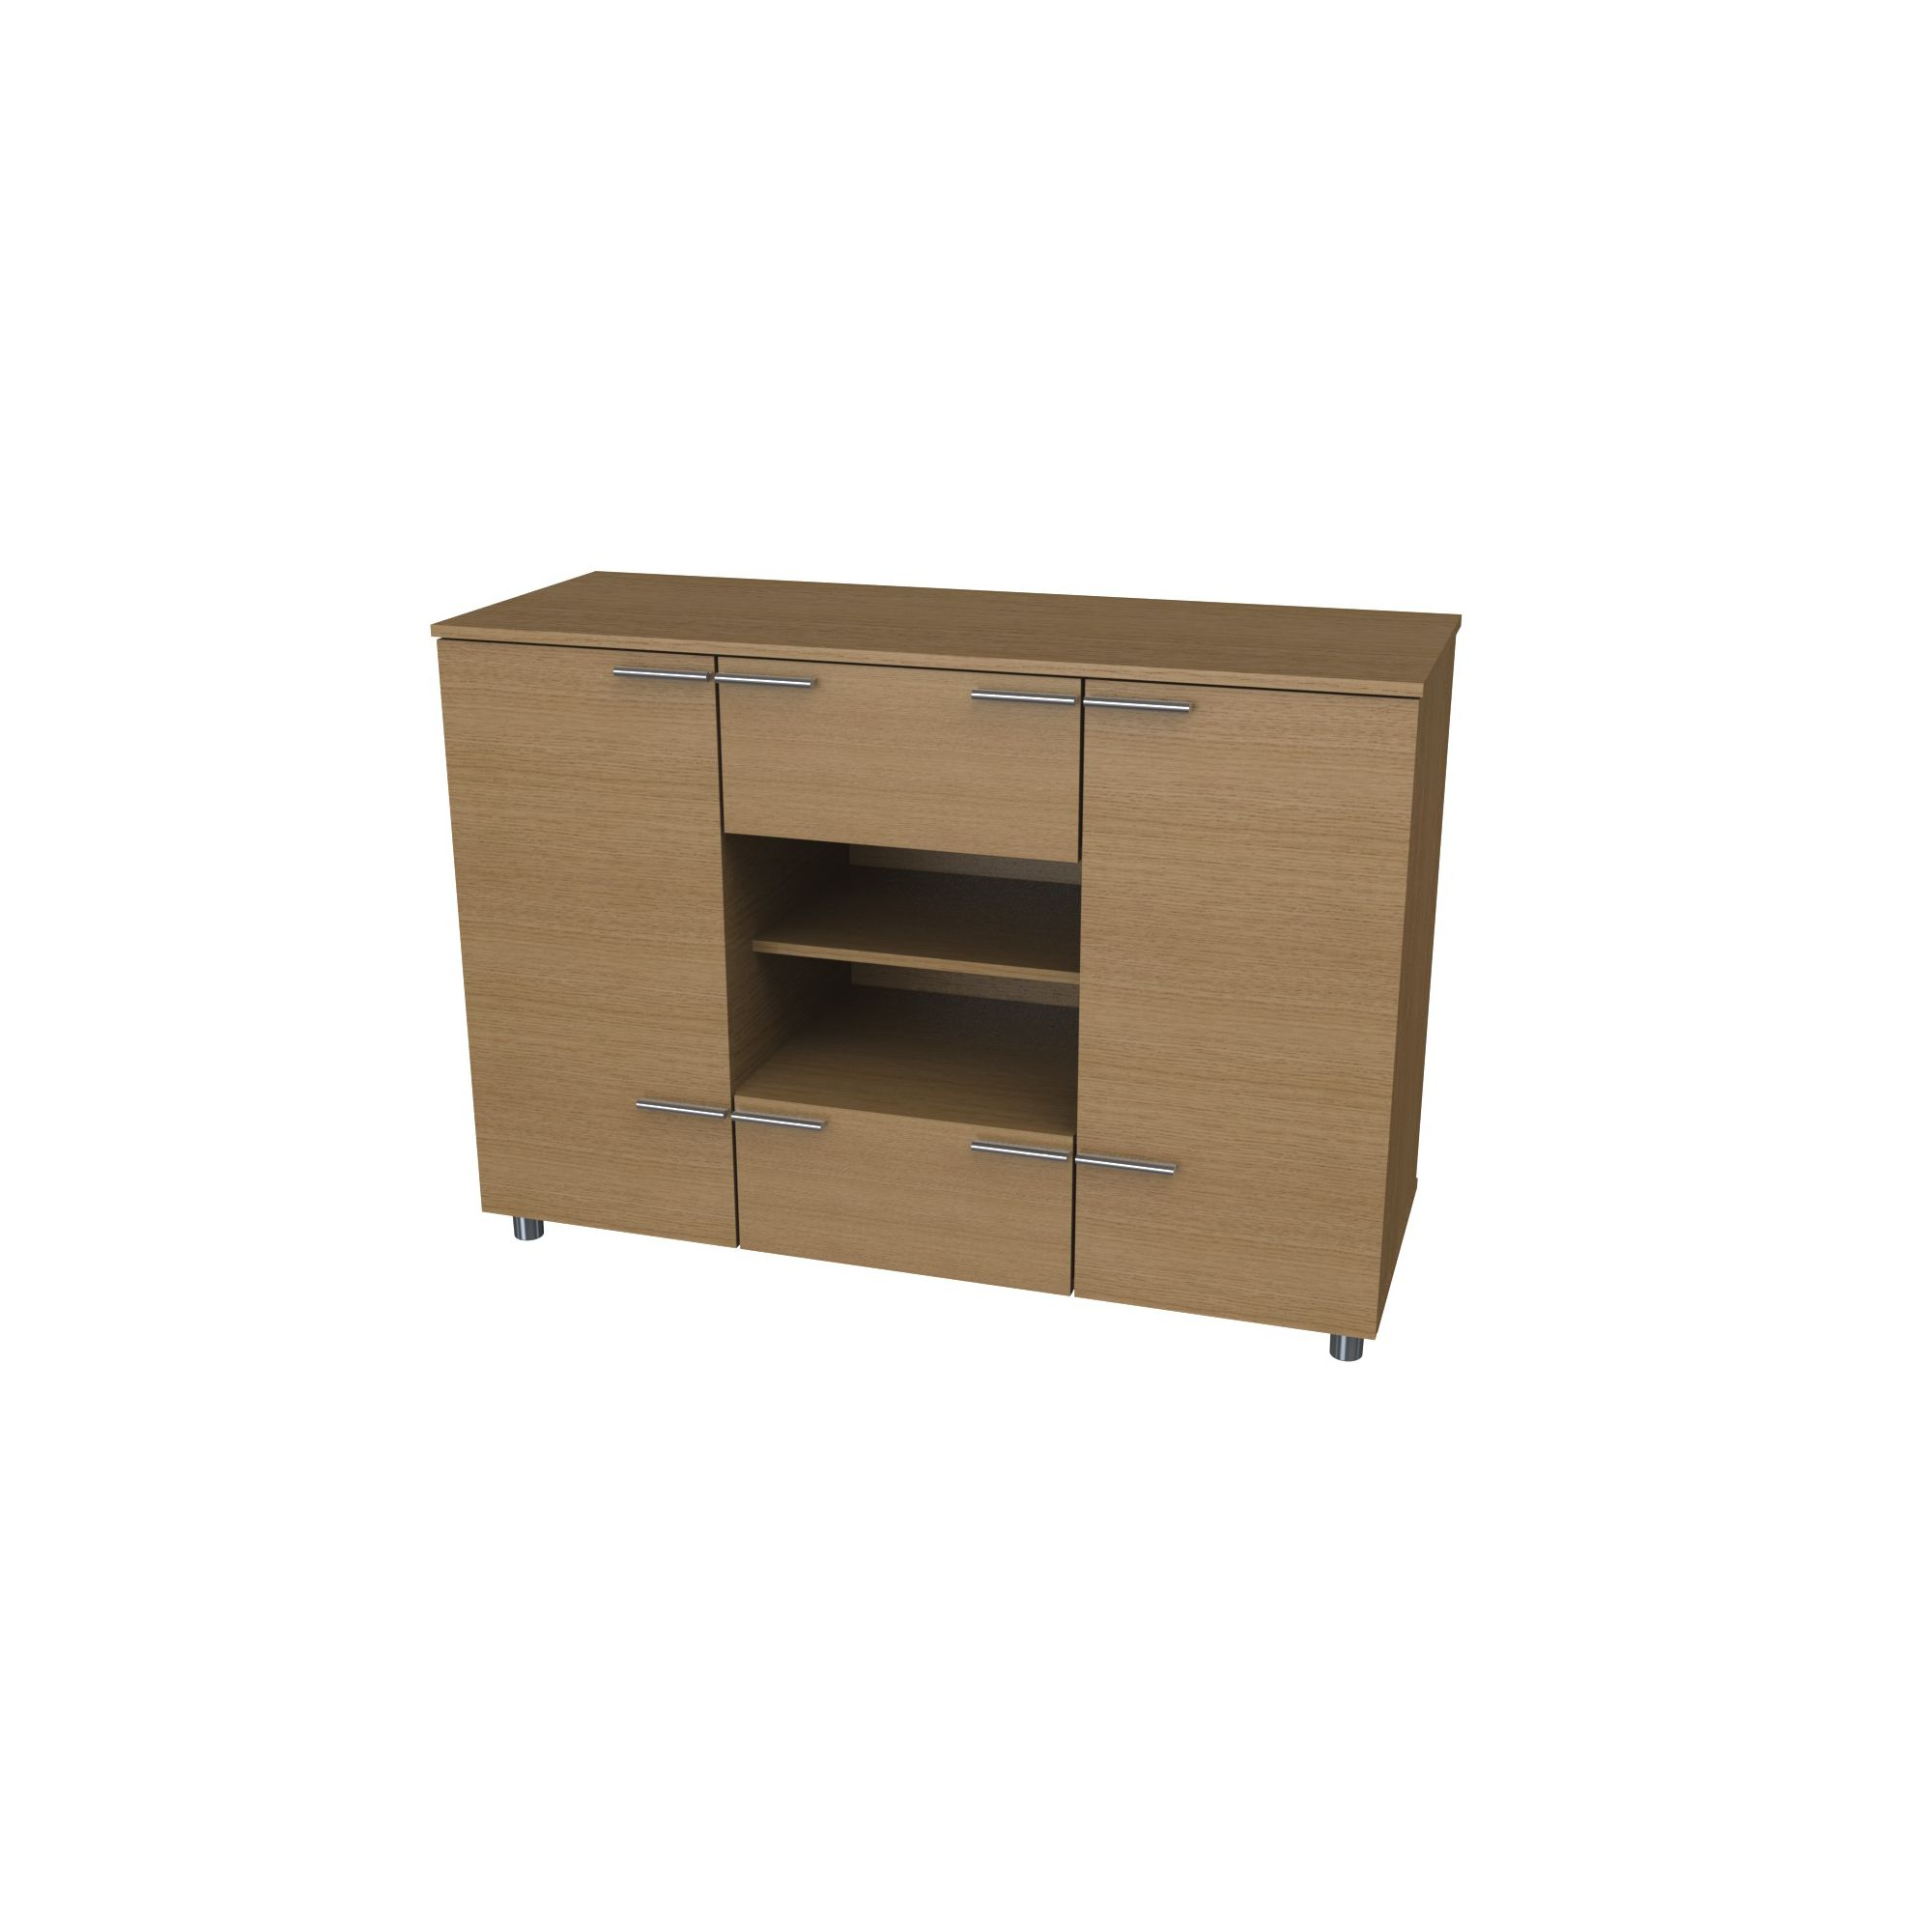 Ashcraft Chester Sideboard - Walnut at Tescos Direct